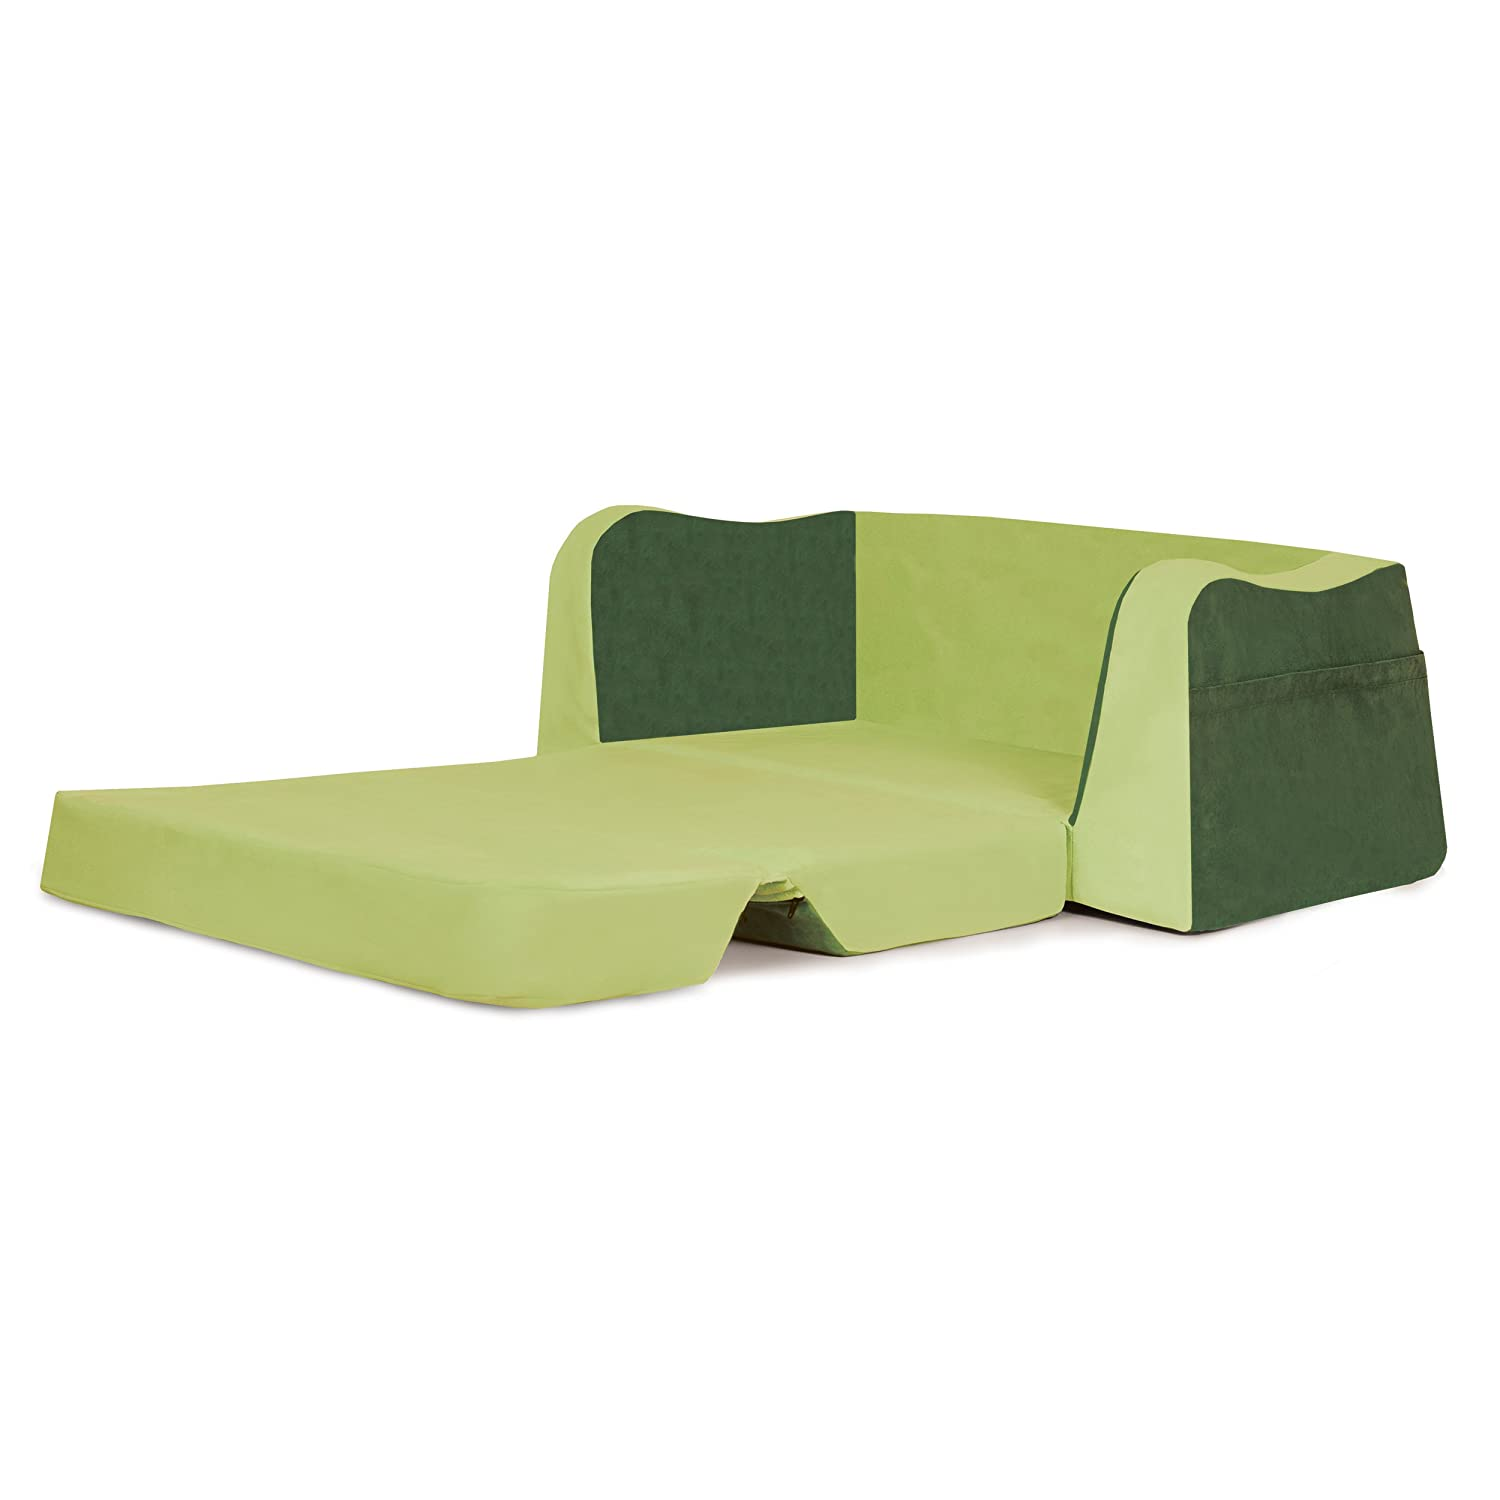 pkolino pkfflsagr little reader sofa green p kolino rh onegoalselect com